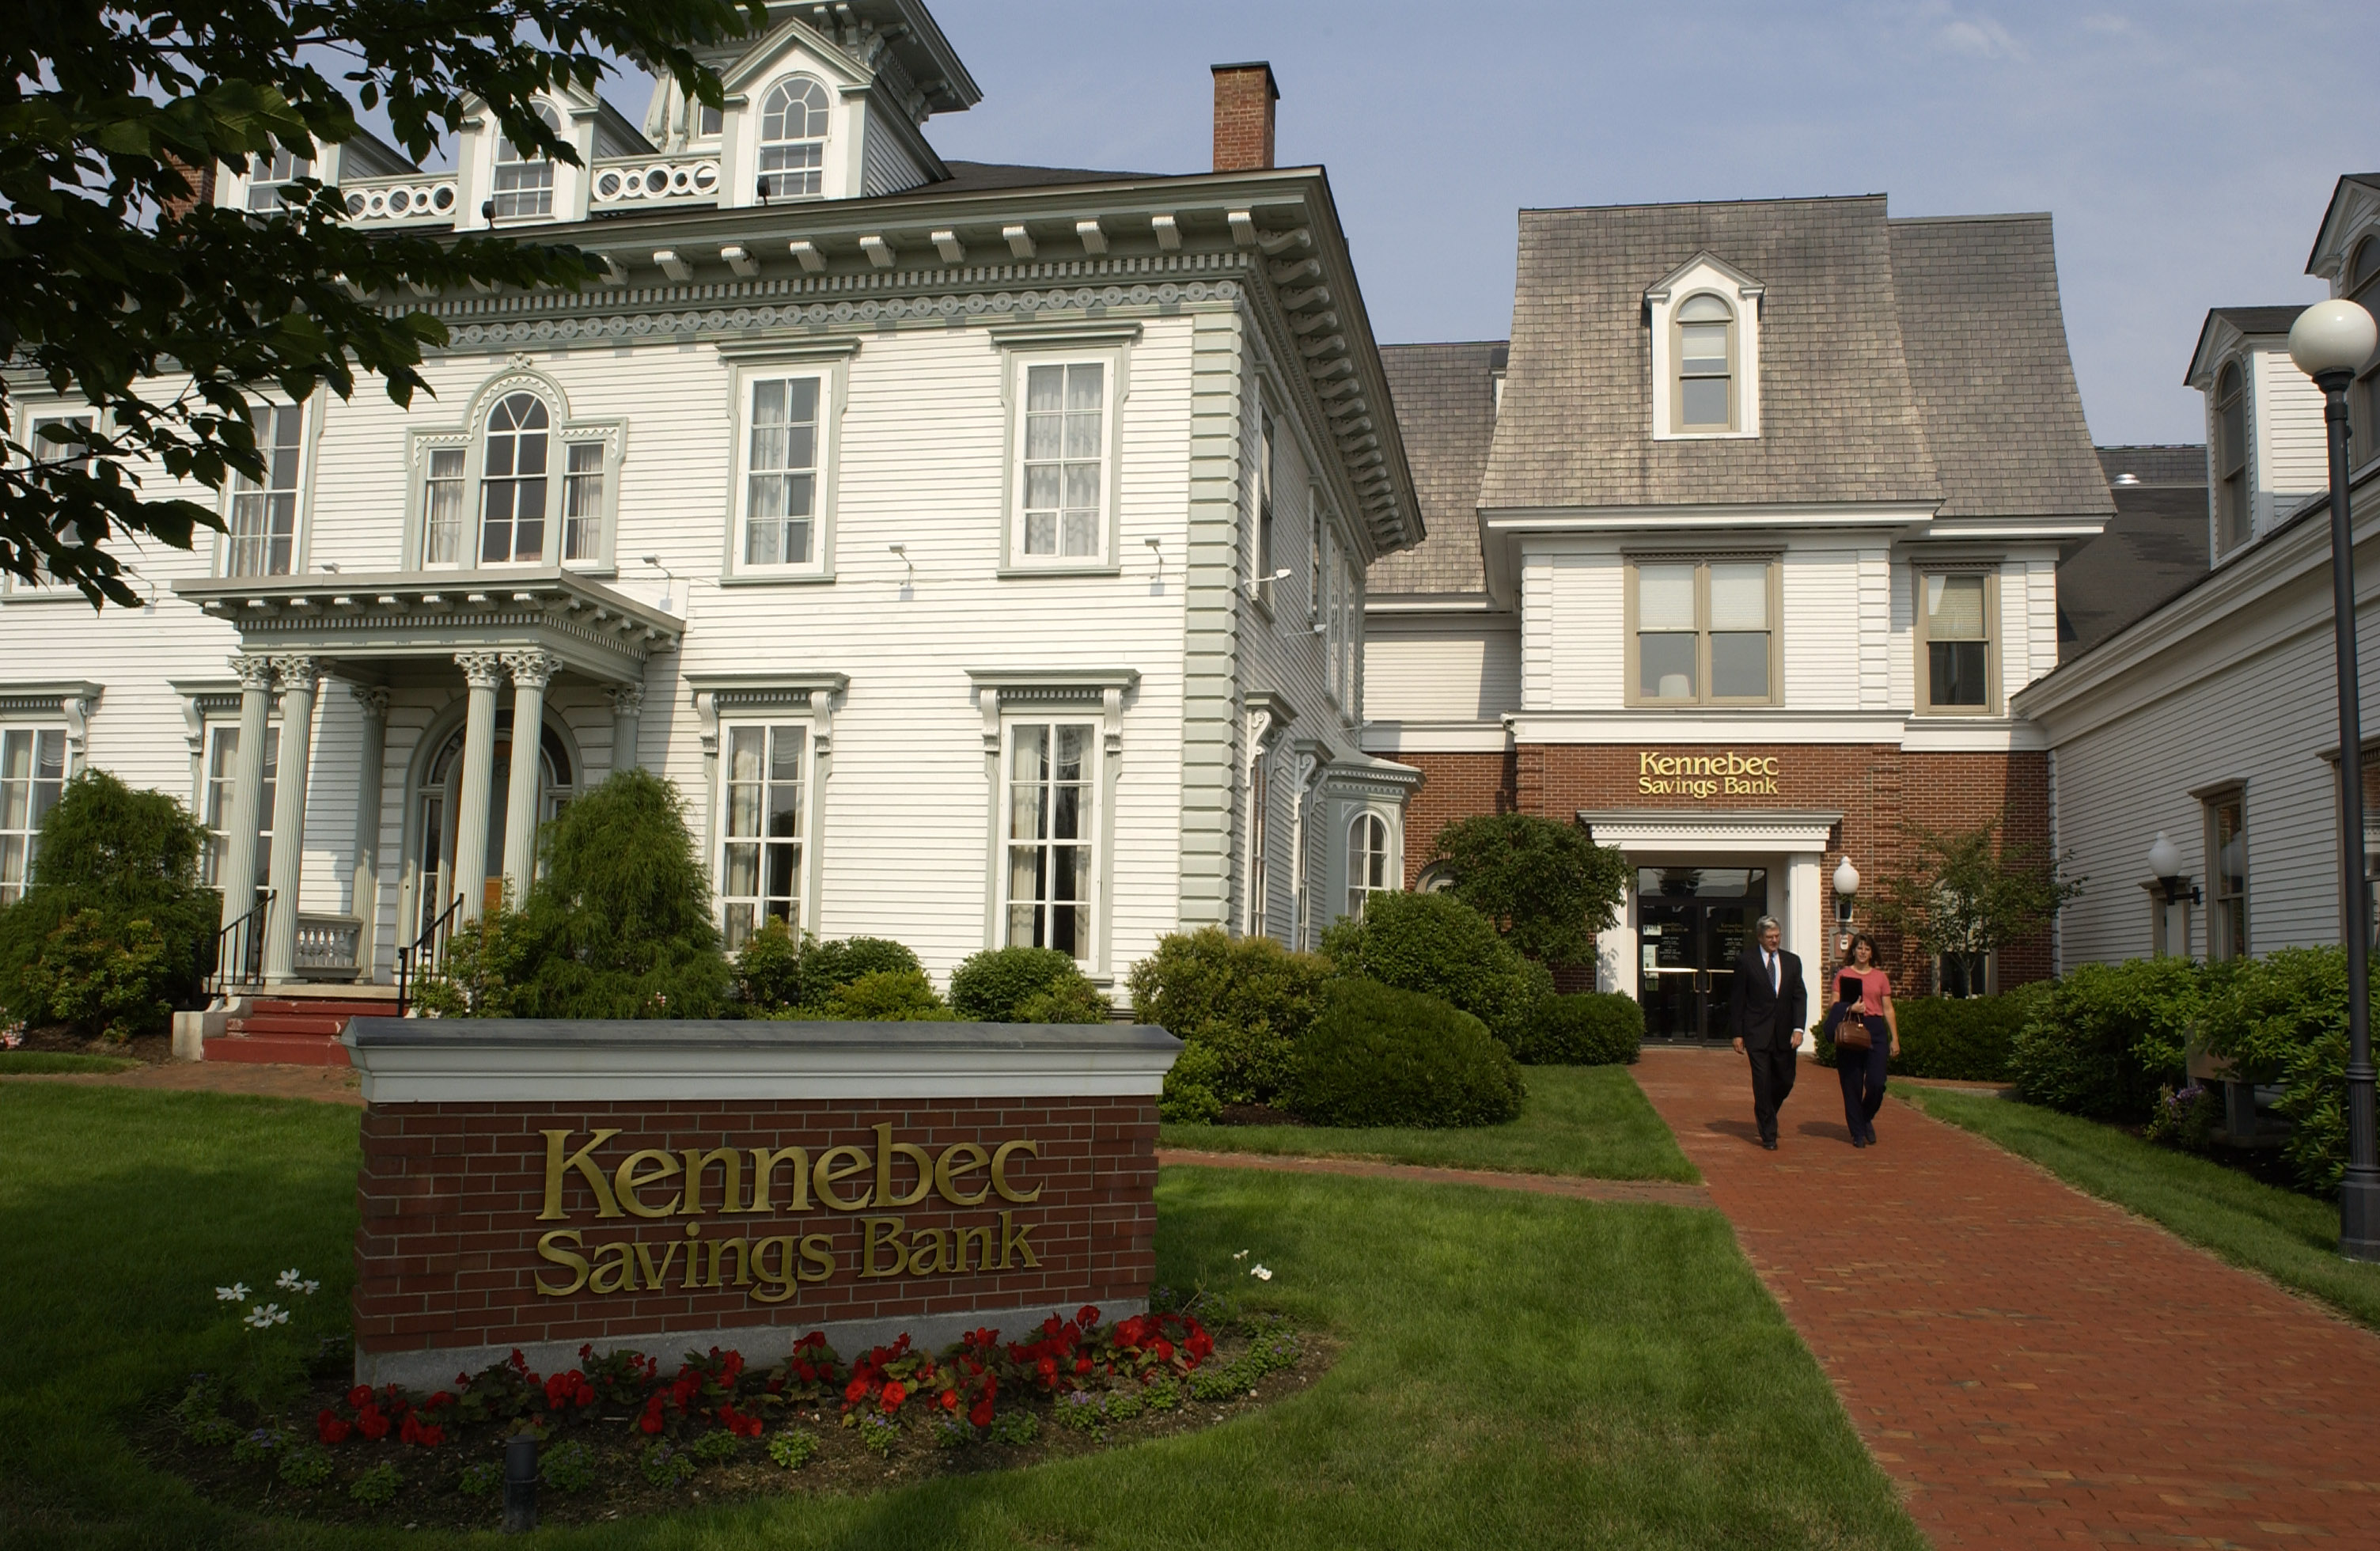 Kennebec Savings Bank | Courtesy photo